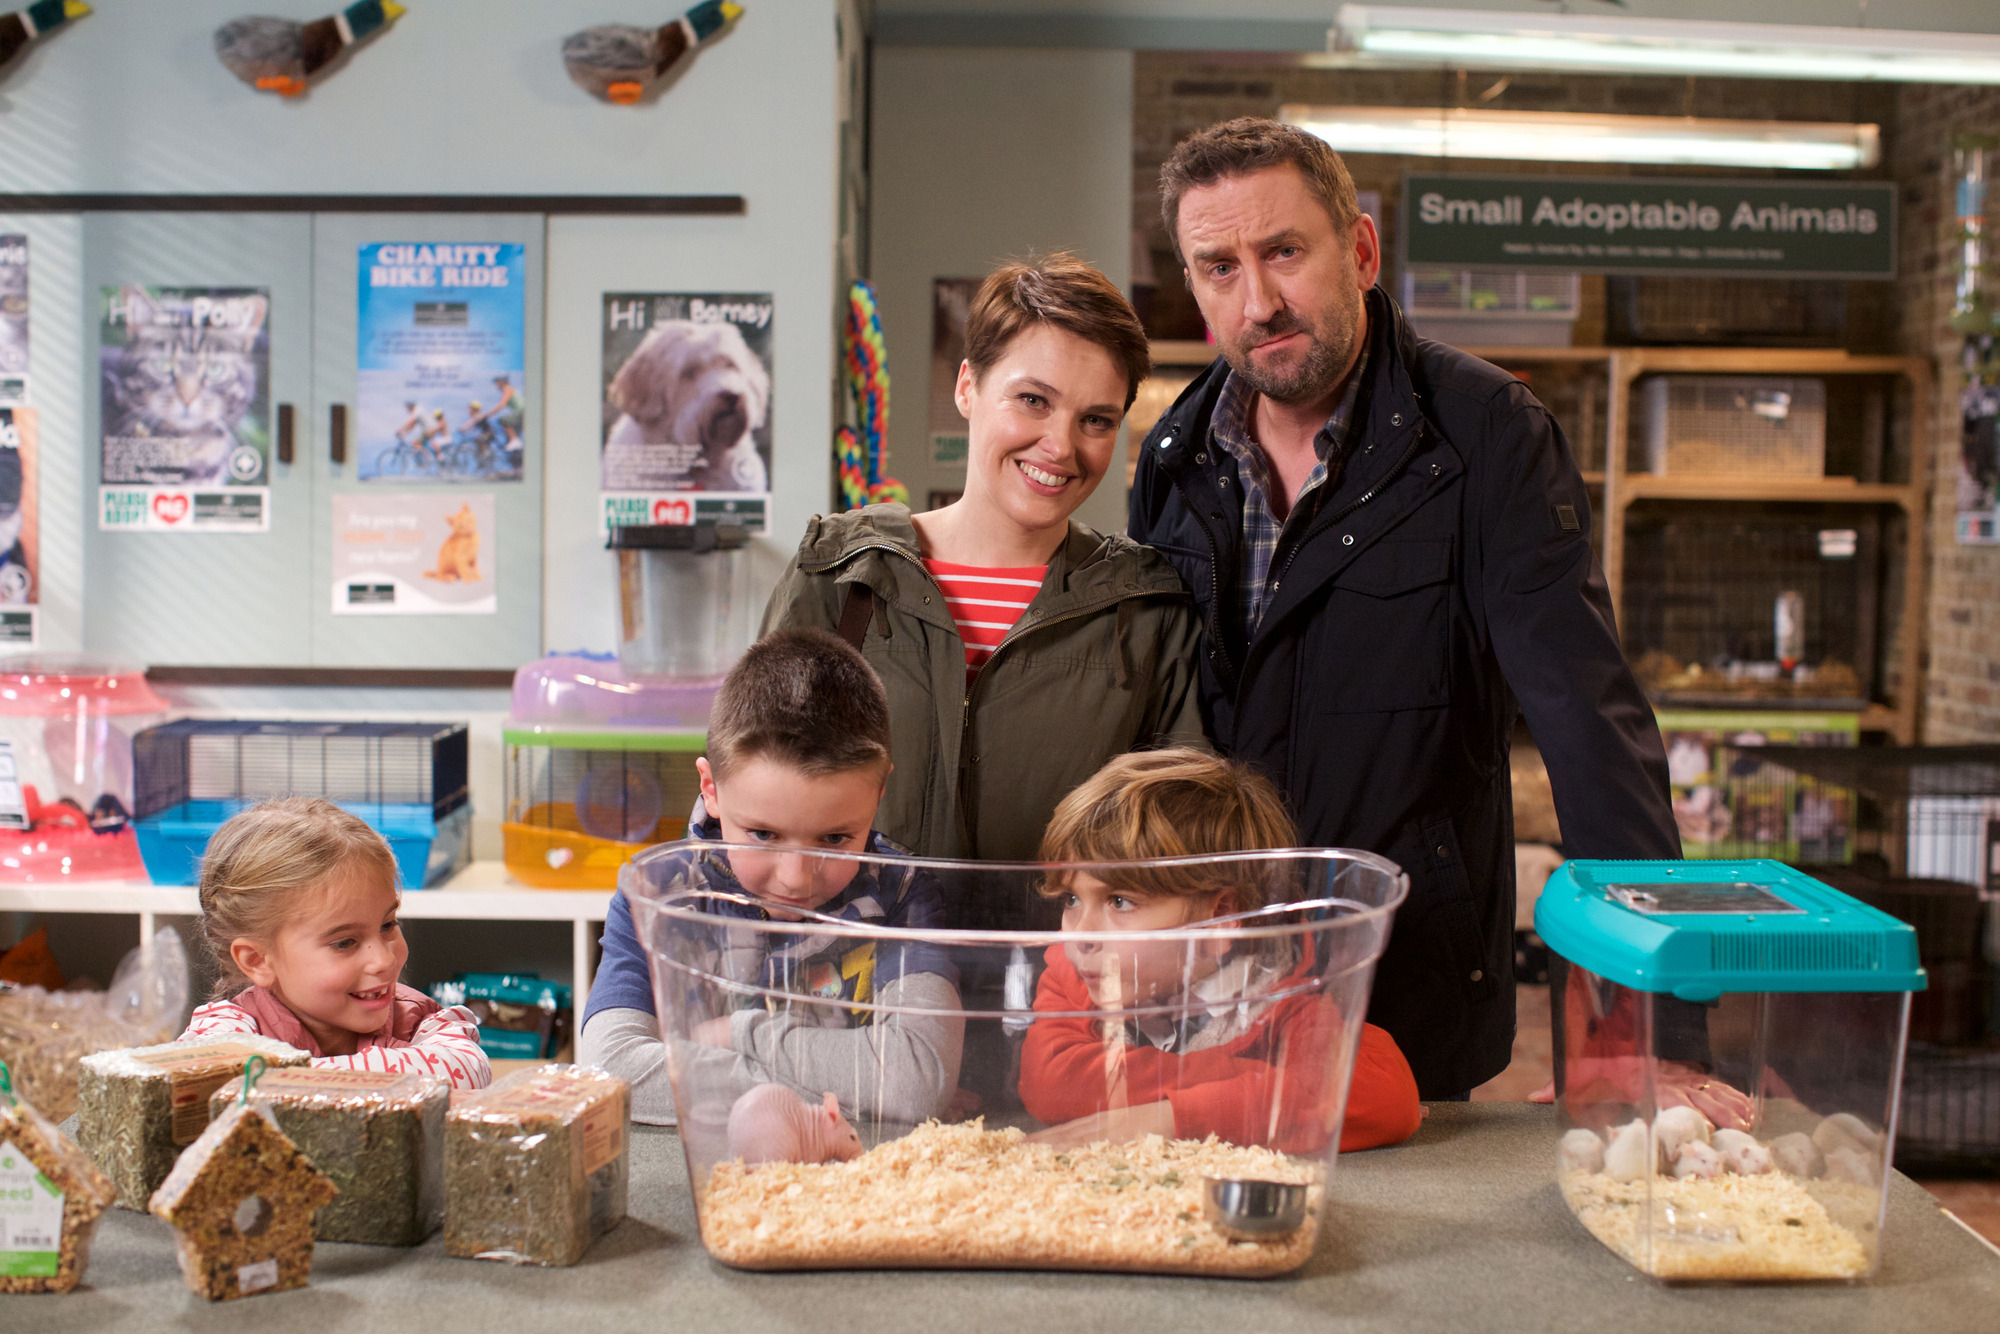 Programme Name: Not Going Out  - TX: n/a - Episode: Generic (No. Generic) - Picture Shows: (L-R) Molly (FRANCESCA NEWMAN), Charlie (FINLEY SOUTHBY), Lucy (SALLY BRETTON), Benji (MAX PATTISON), Lee (LEE MACK) - (C) Avalon - Photographer: Pete Dadds  BBC, TL